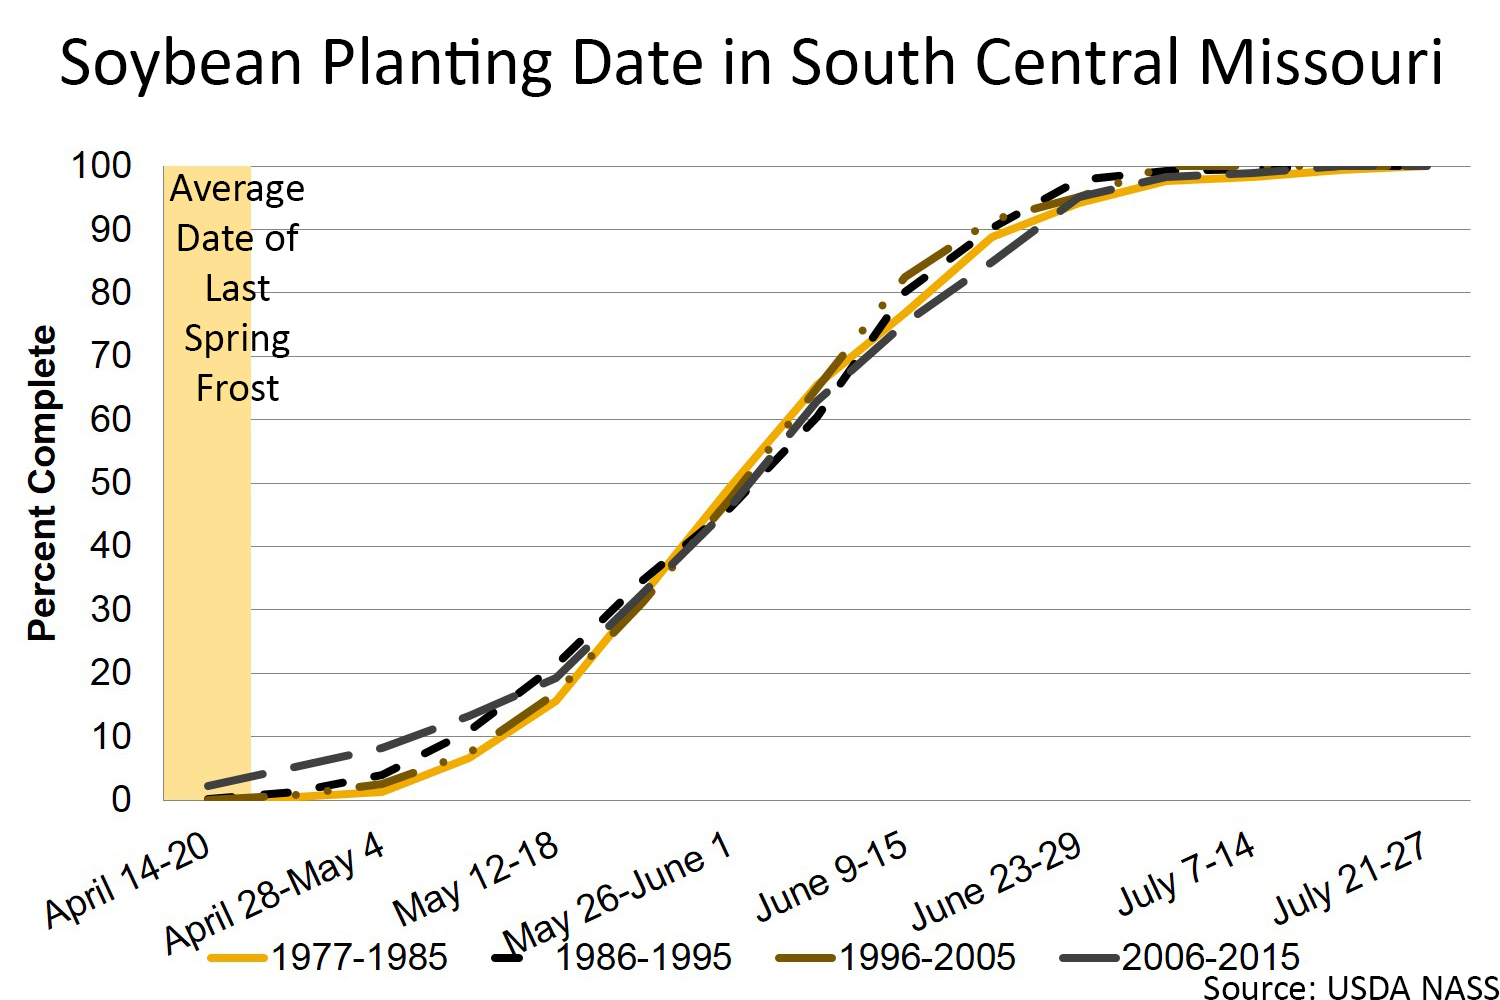 Soybean planting date in South Central Missouri chart